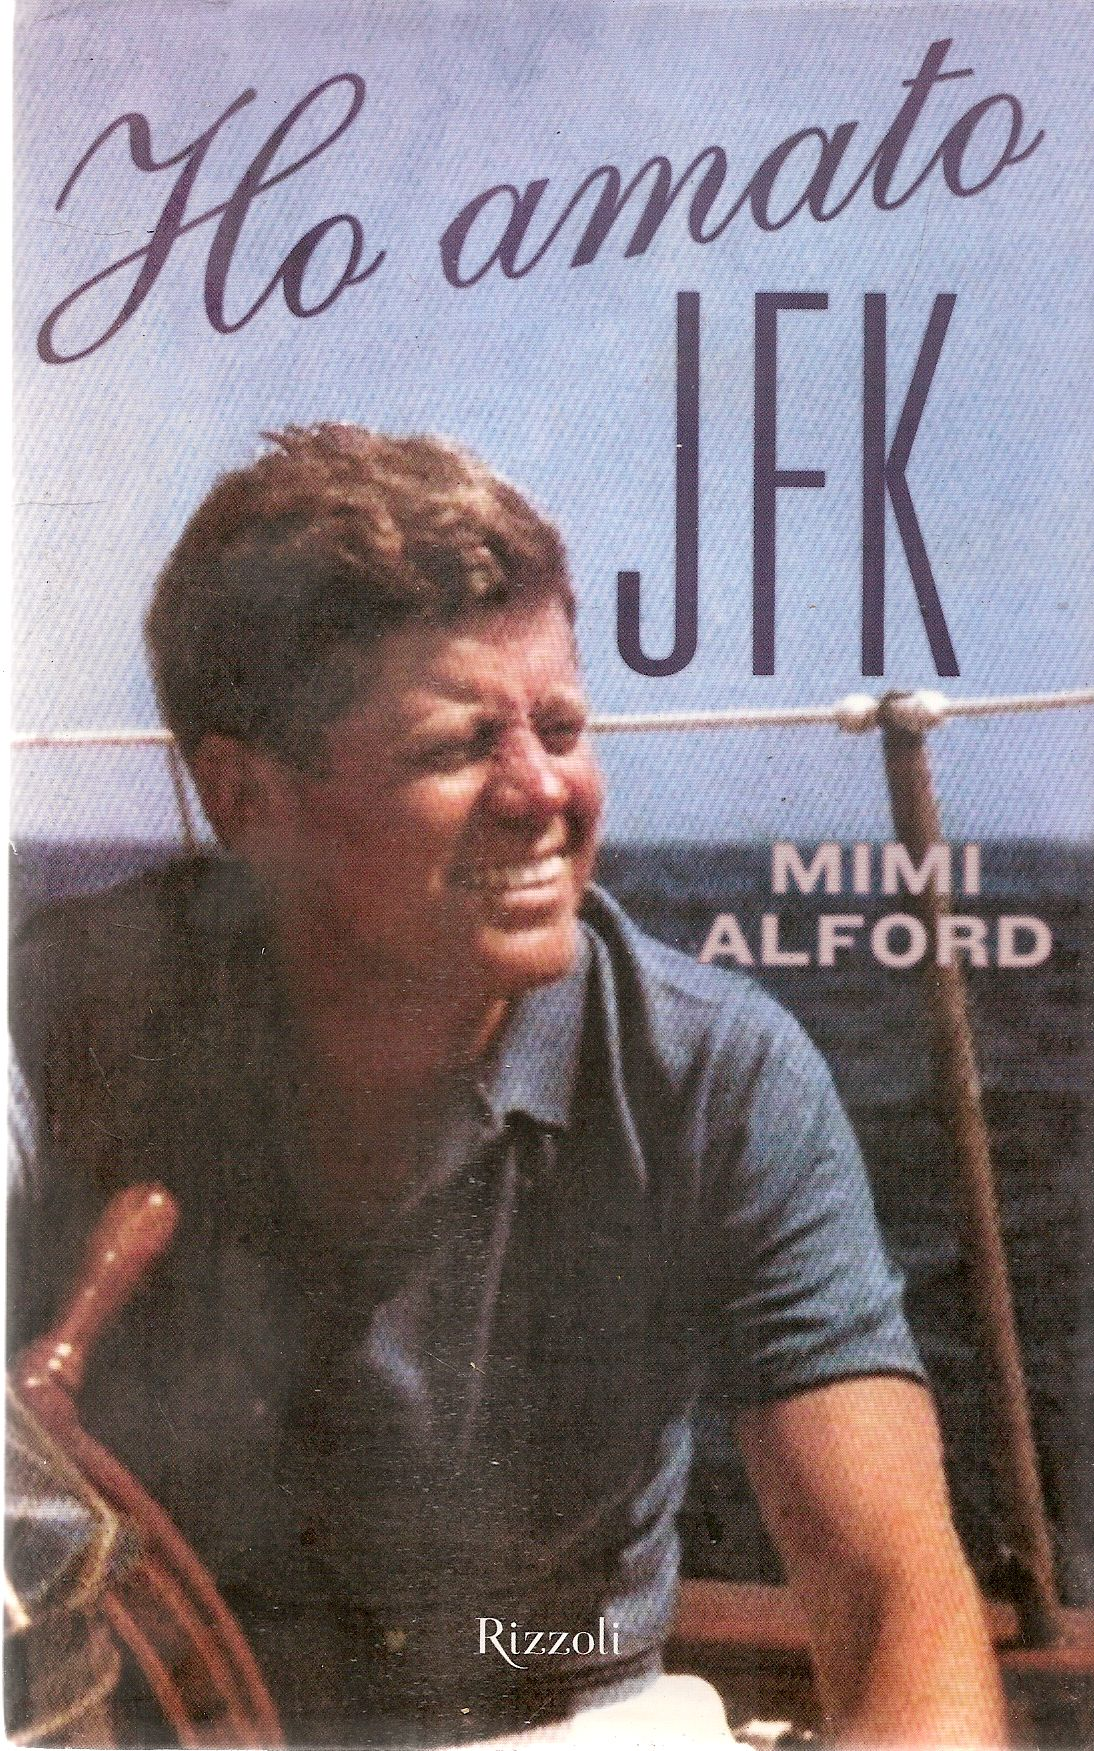 HO AMATO JFK - MIMI ALFORD